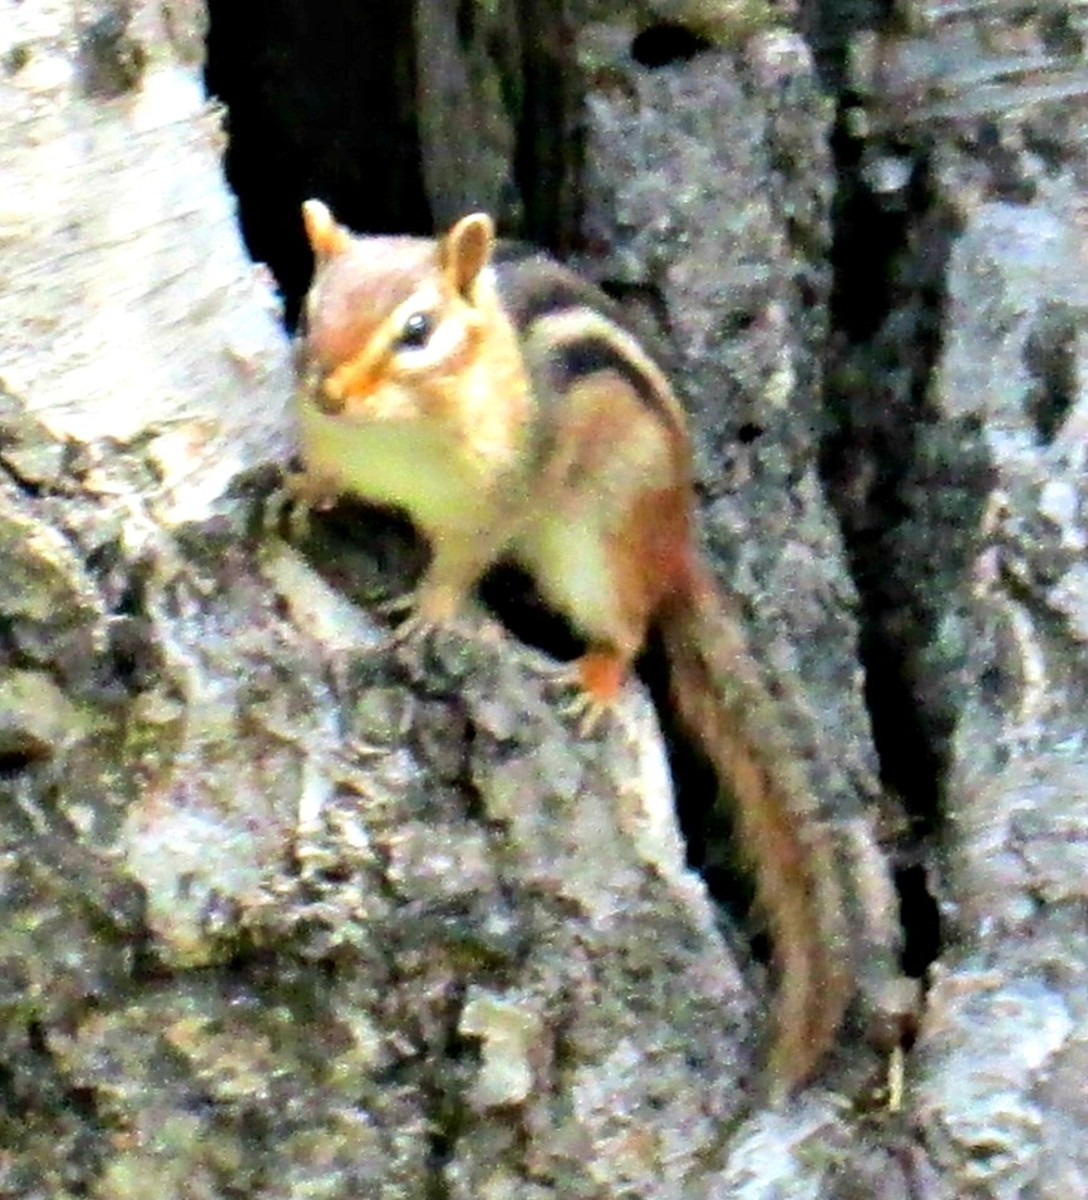 Chipmunk in the backyard tree.